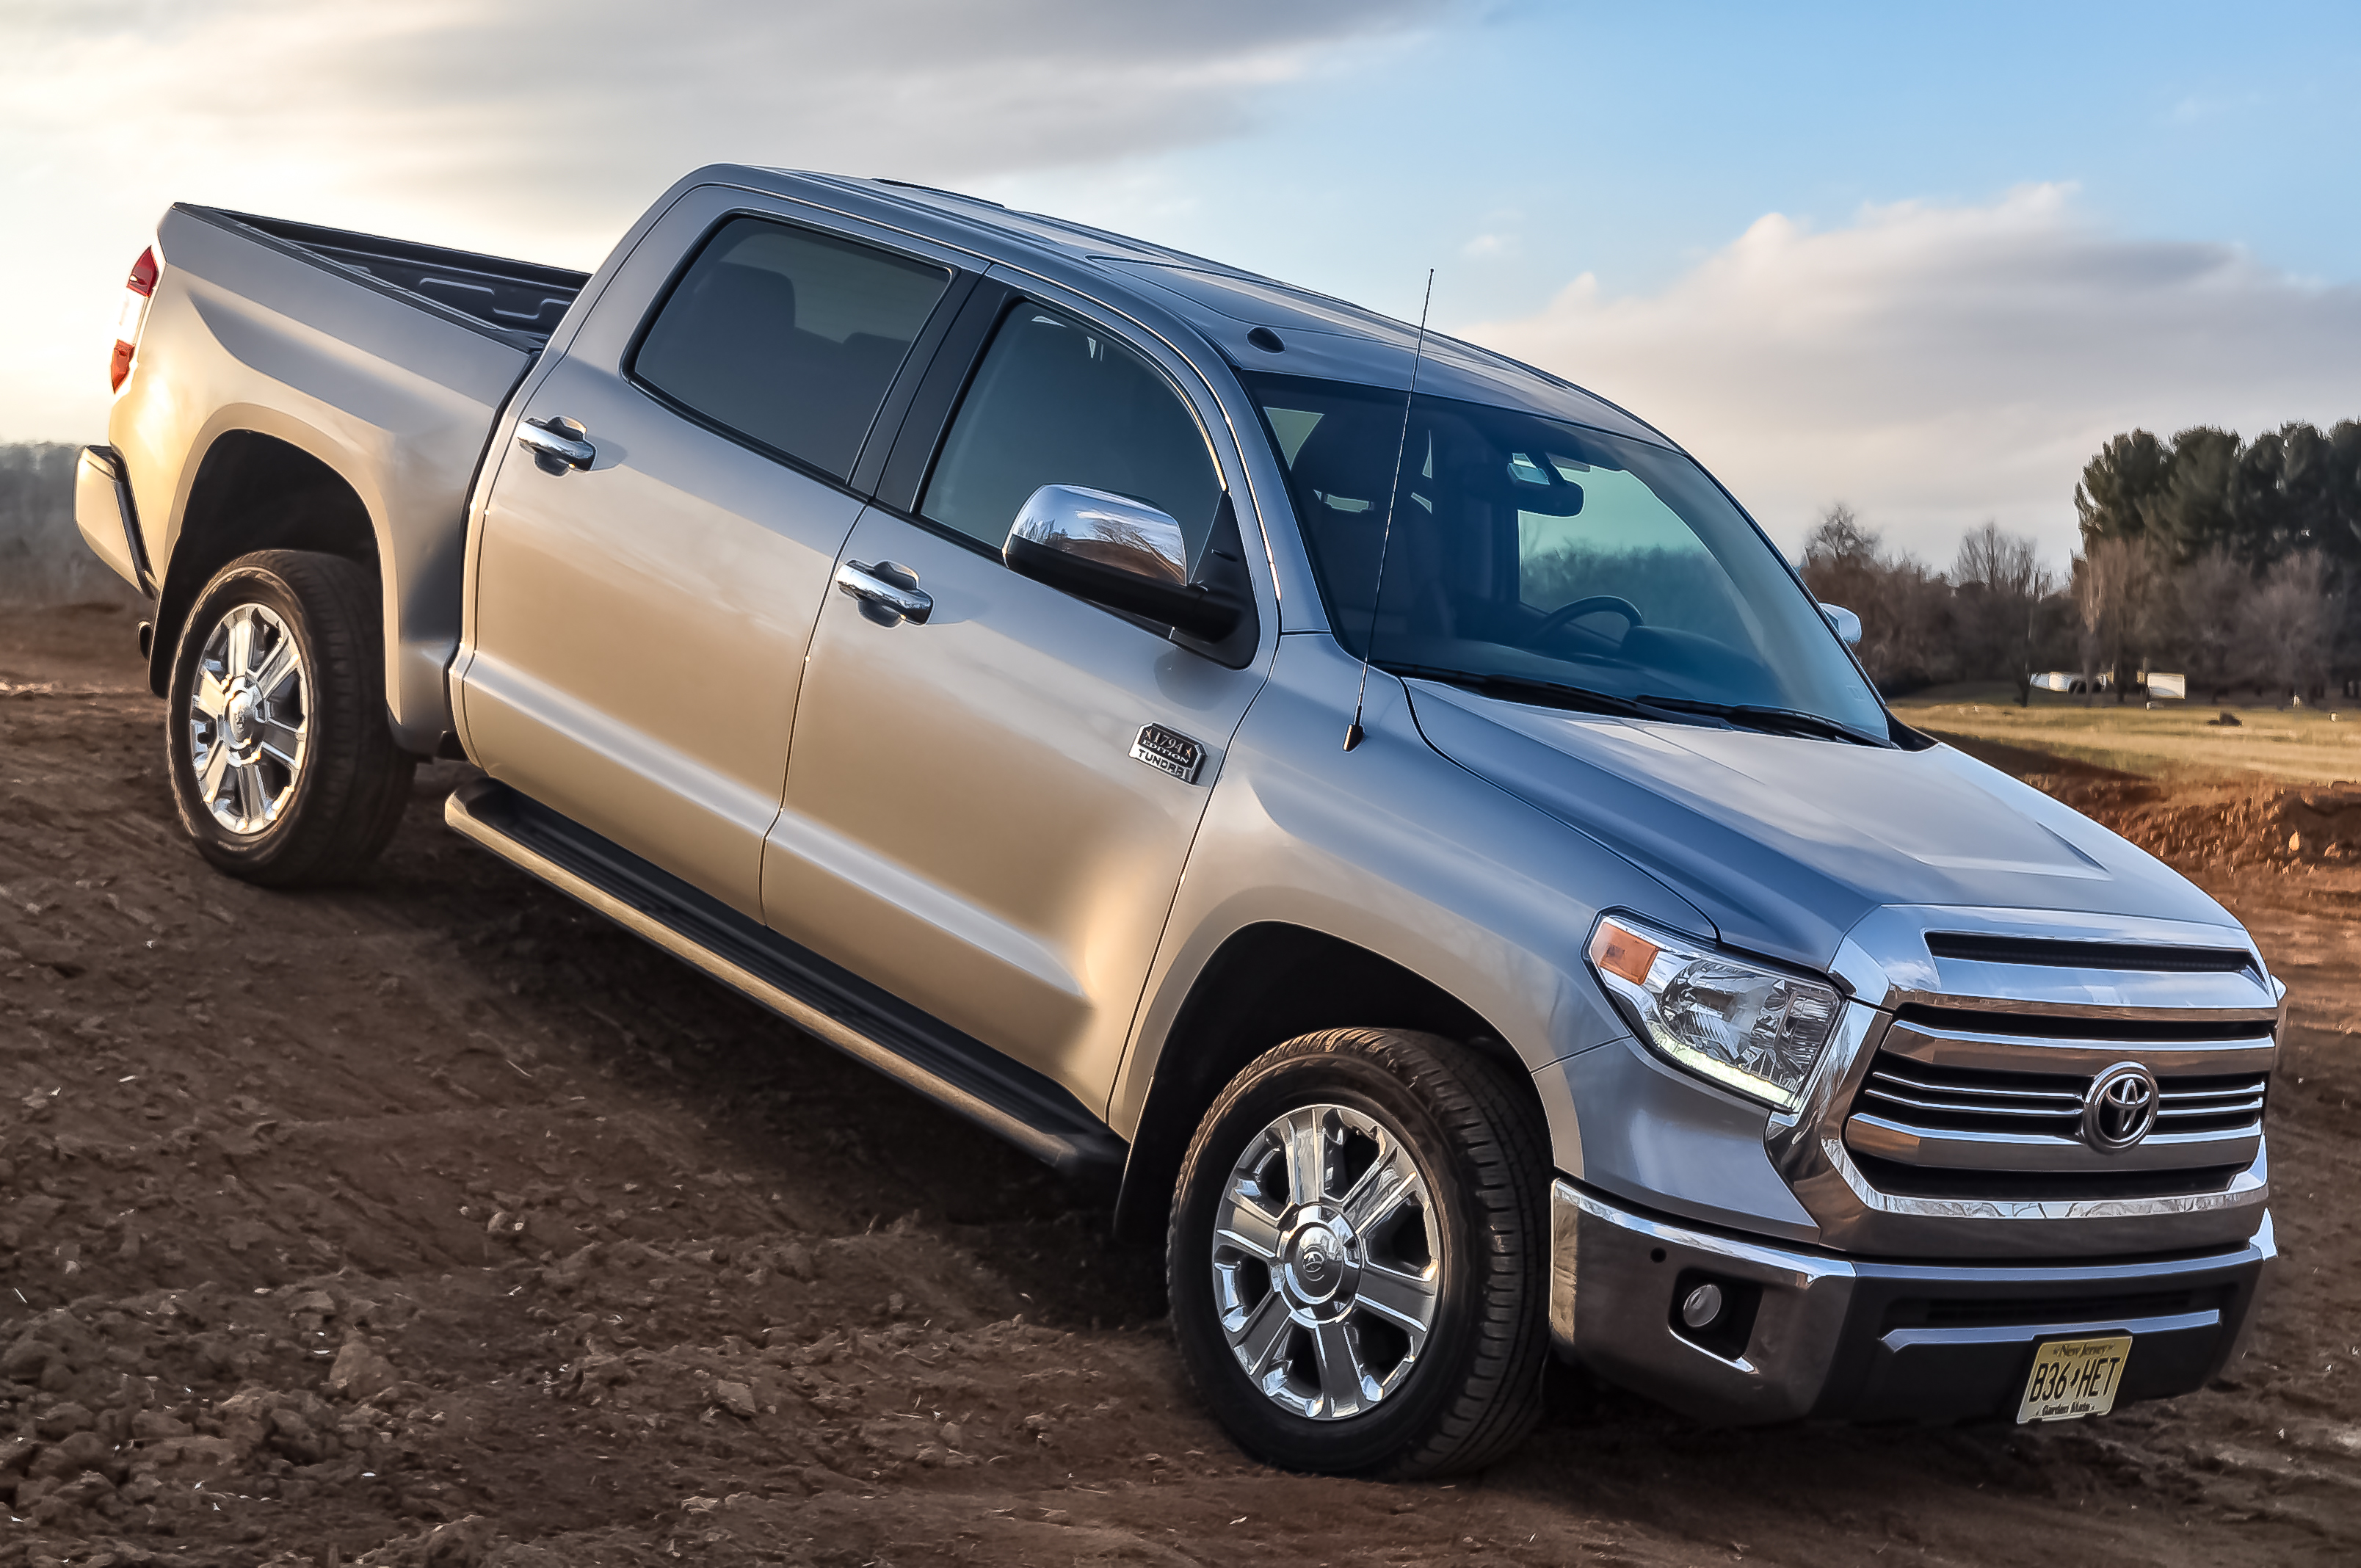 The 2017 Toyota Tundra 1794 CrewMax – A Sexy 4x4 Workhorse -